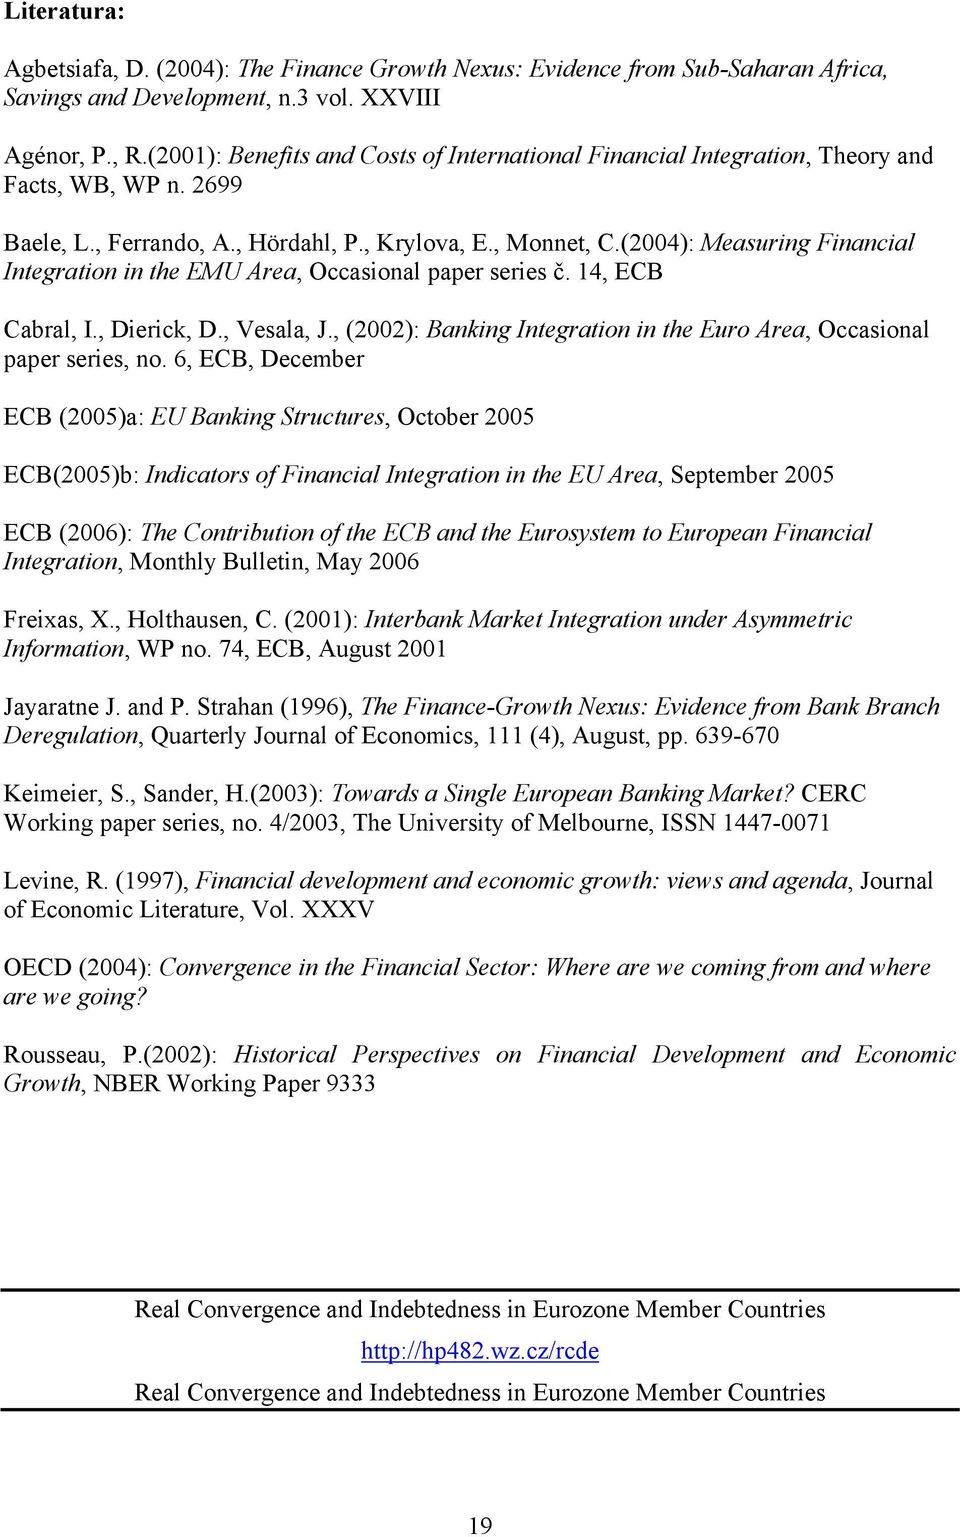 (24): Measuring Financial Integration in the EMU Area, Occasional paper series č. 4, ECB Cabral, I., Dierick, D., Vesala, J., (22): Banking Integration in the Euro Area, Occasional paper series, no.